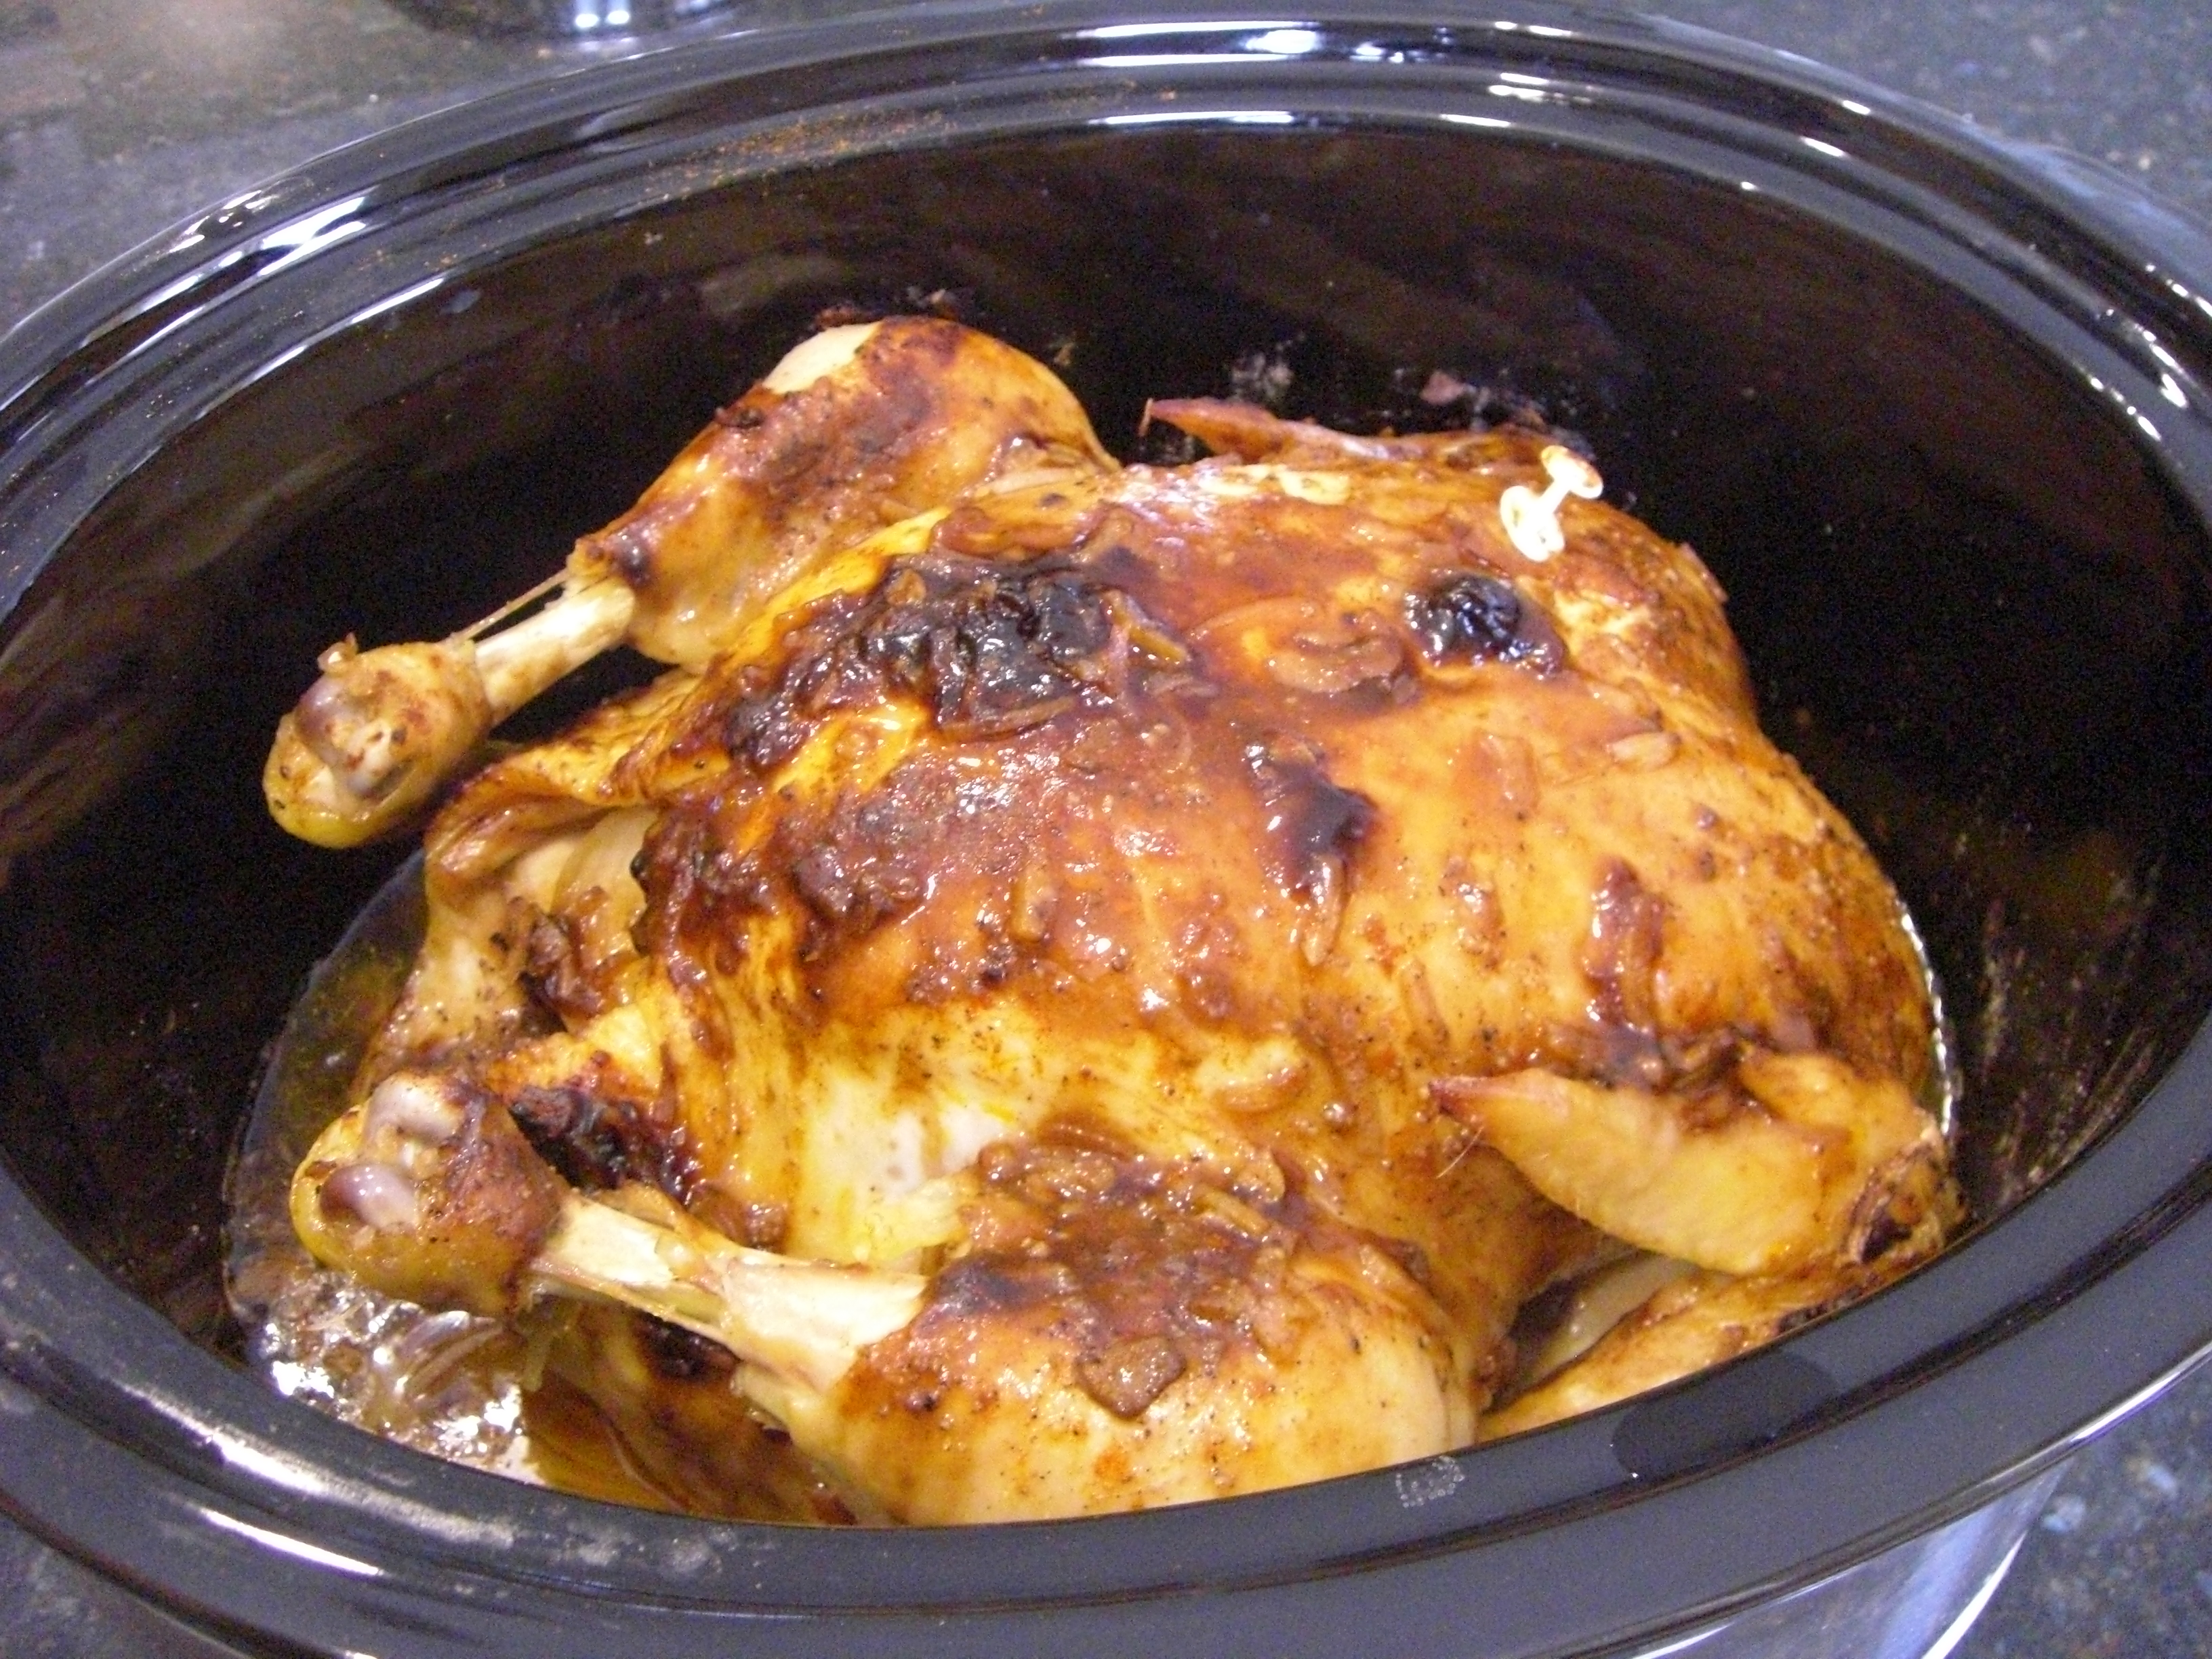 Aug 29,  · Slow Cooker Brown Sugar Garlic Chicken made with just five ingredients, you can set it in minutes and have the perfect weeknight meal! Slow Cooker Brown Sugar Garlic Chicken is the slow cooker chicken version of one of the most popular recipes on my blog of all time, Brown Sugar Garlic Pork with Carrots & Potatoes.5/5(36).